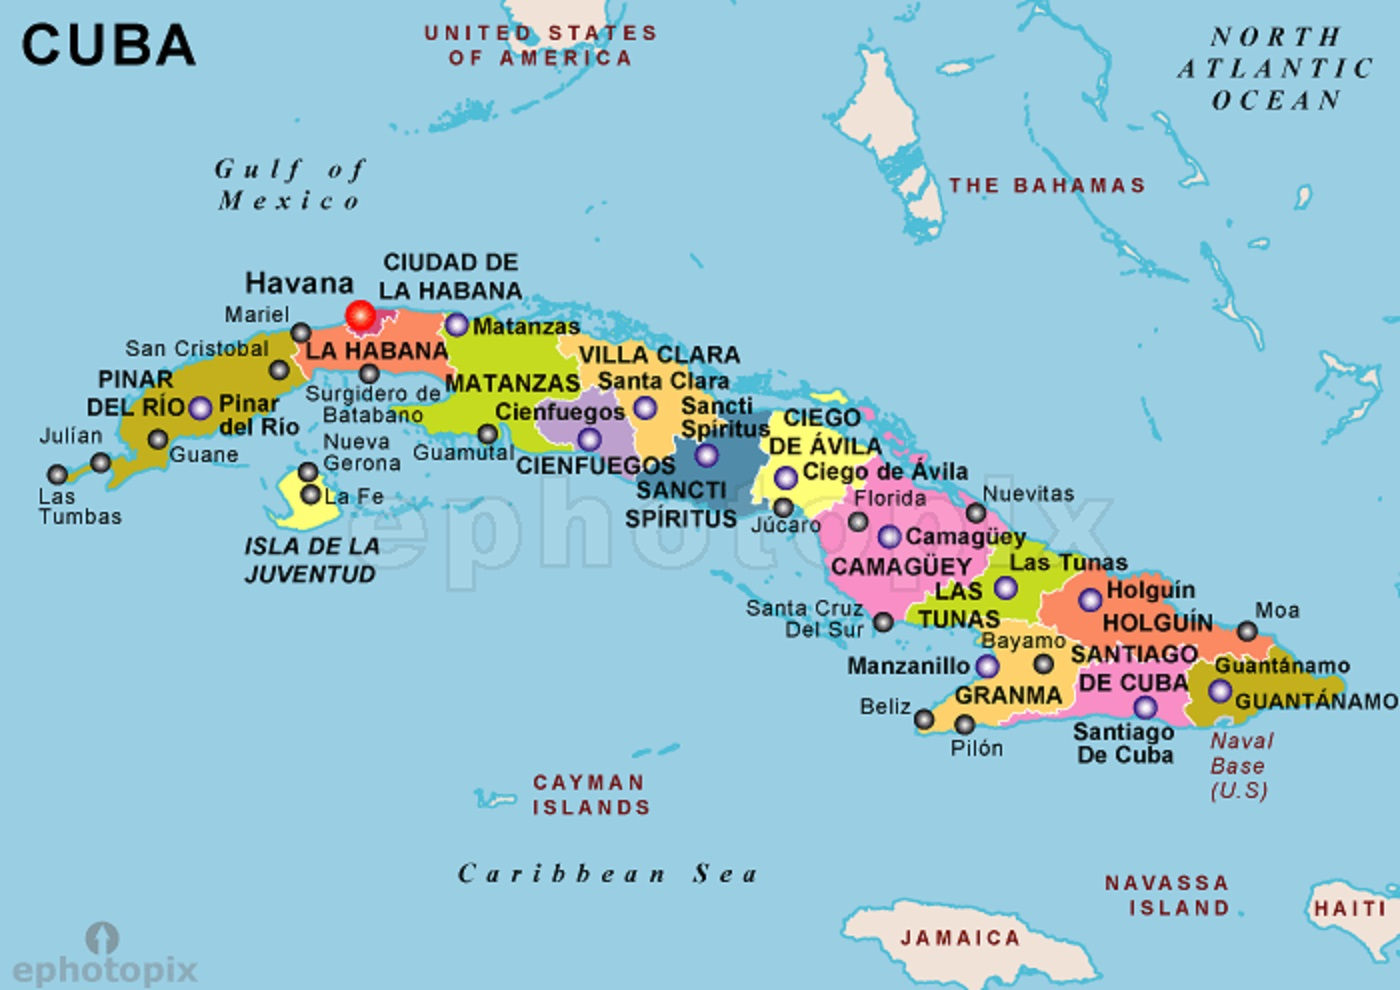 Cuba Is It 3rd 4th 5th World Country Judith And